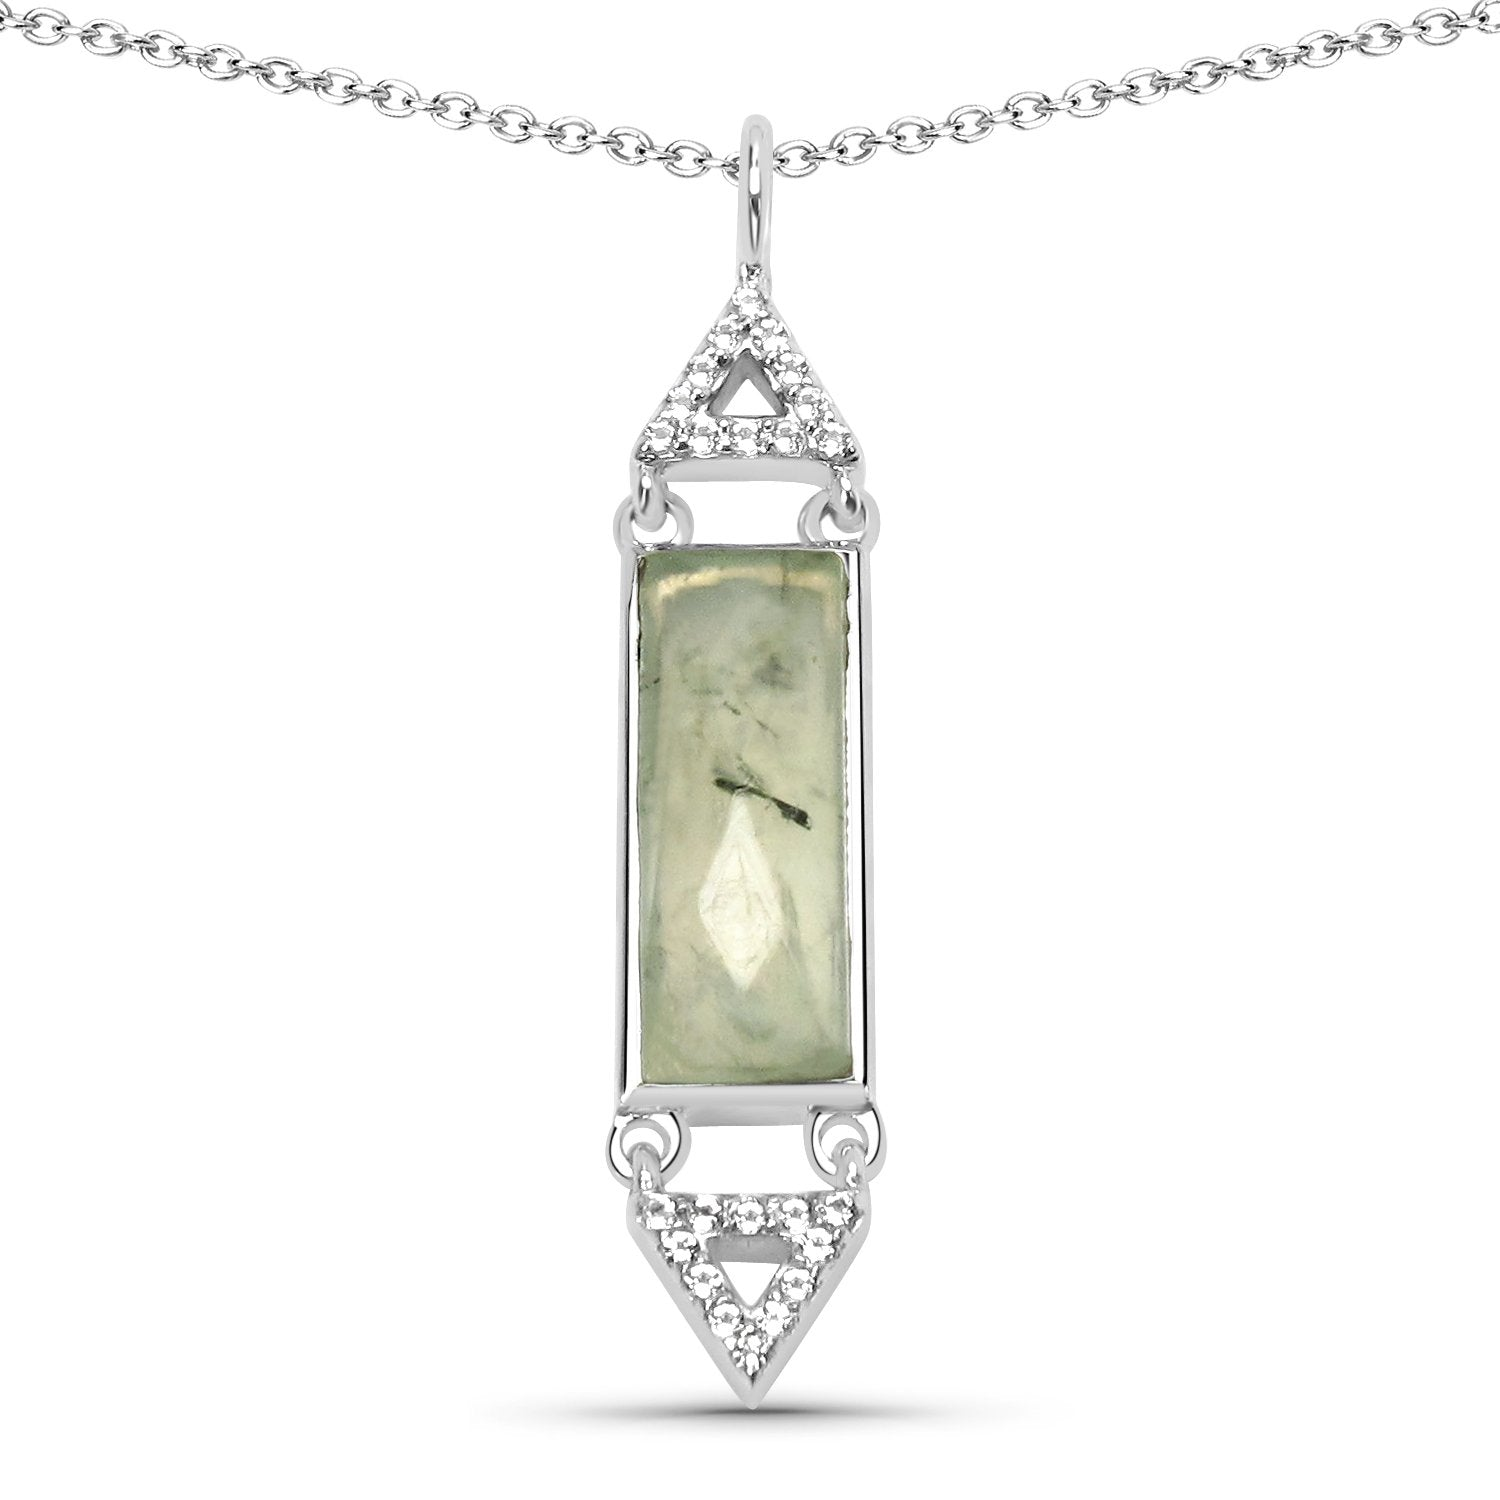 LoveHuang 2.21 Carats Genuine Prehnite and White Topaz Baguette Pendant Solid .925 Sterling Silver With Rhodium Plating, 18 Inch Chain